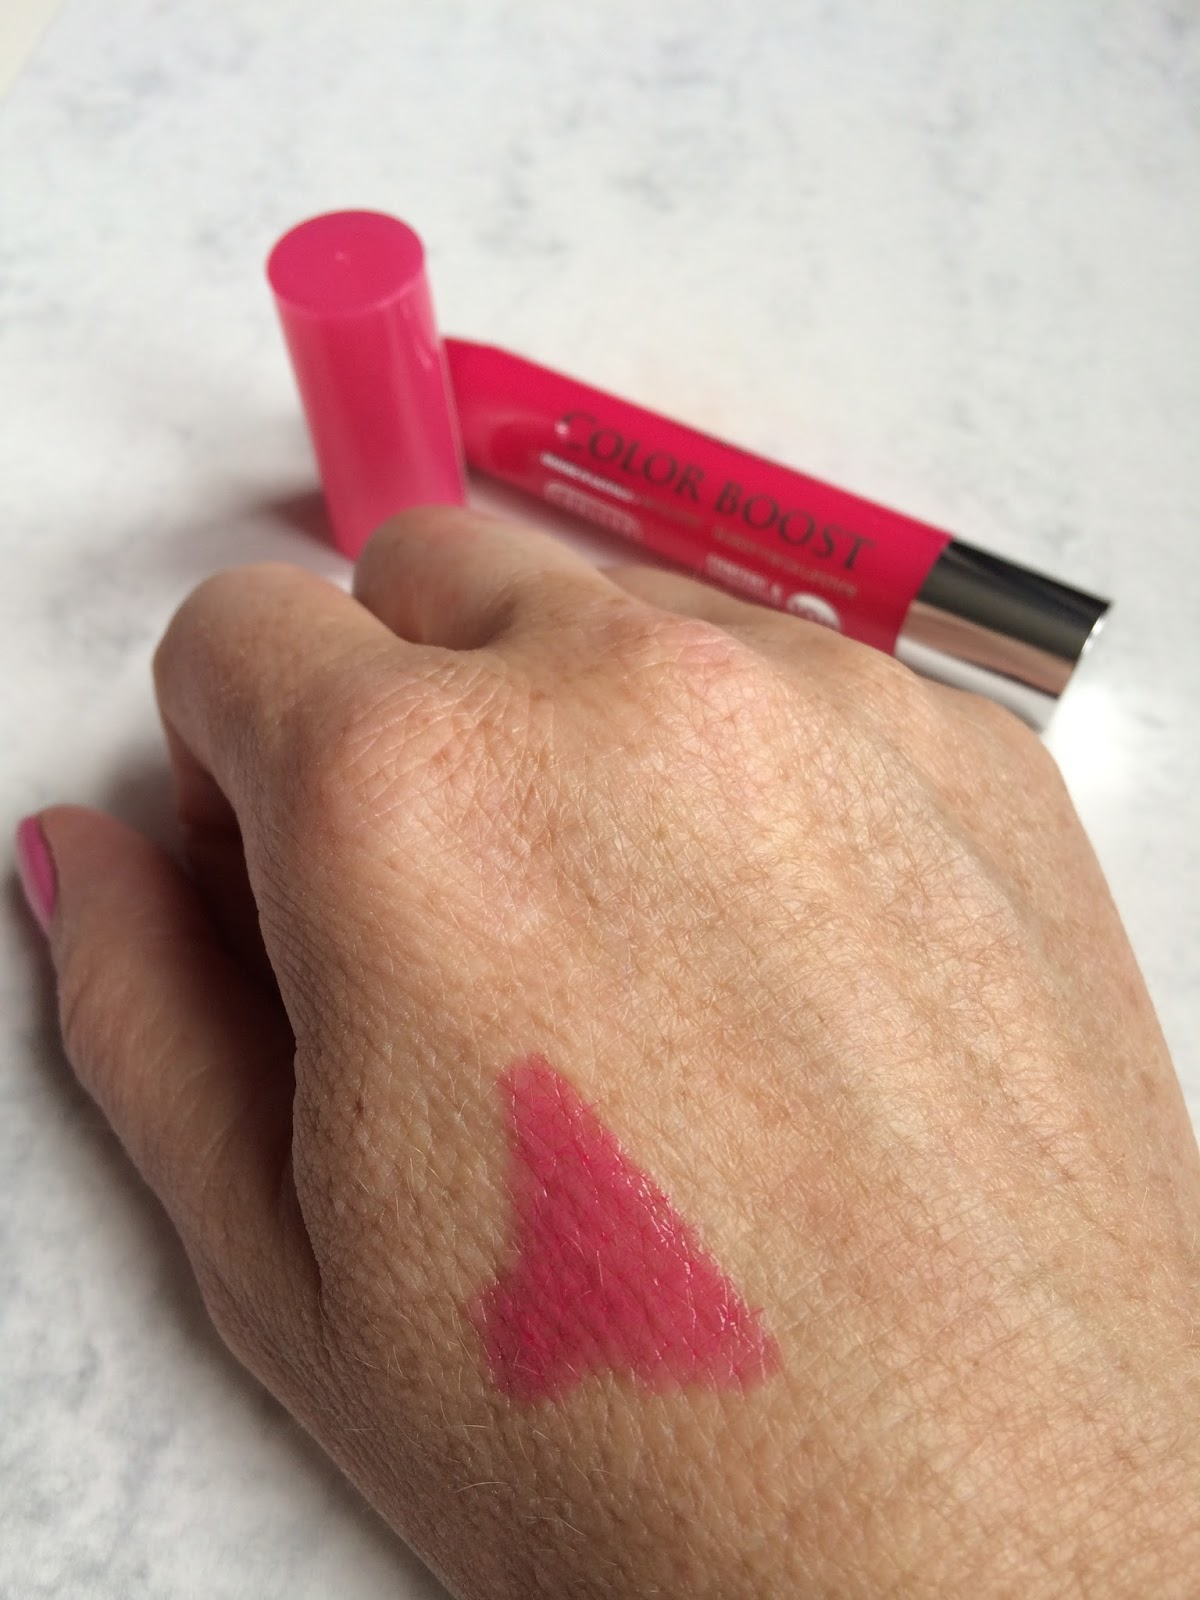 Bourjois lip crayon Glamour Latest In Beauty box Summer edit